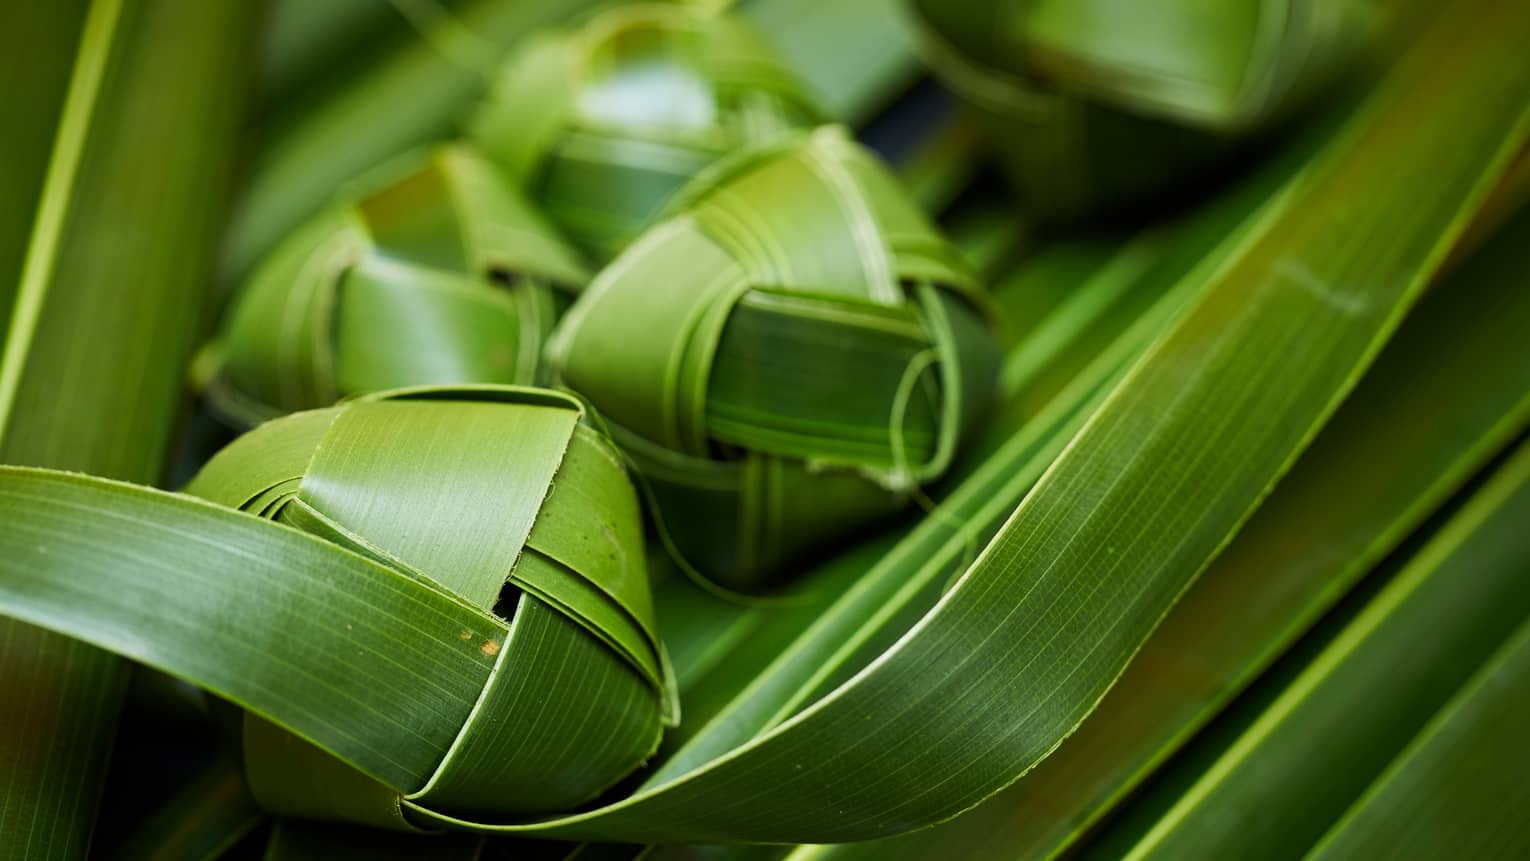 Hawaiian cultural activity – weaving palm fronds